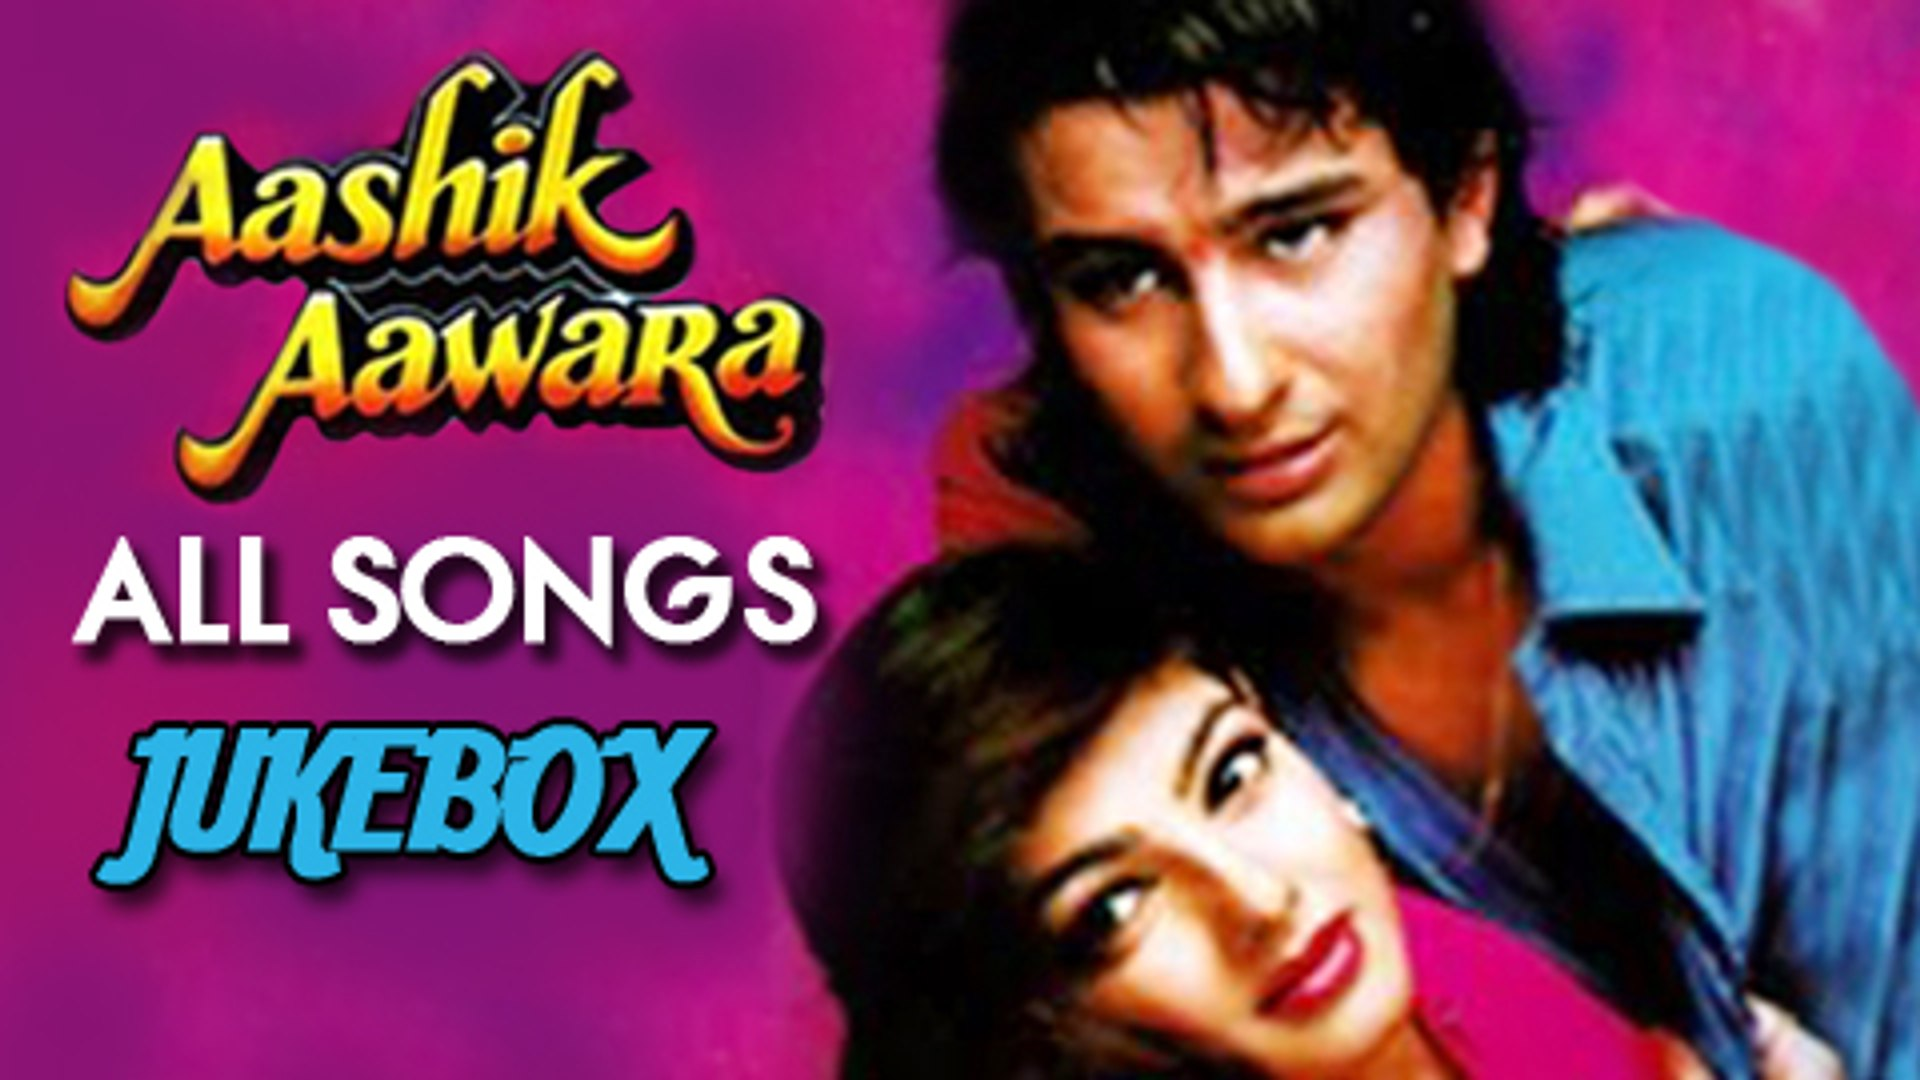 Aashik Aawara - All Songs Jukebox - Saif Ali Khan, Mamta Kulkarni - Best  Romantic Hindi Songs